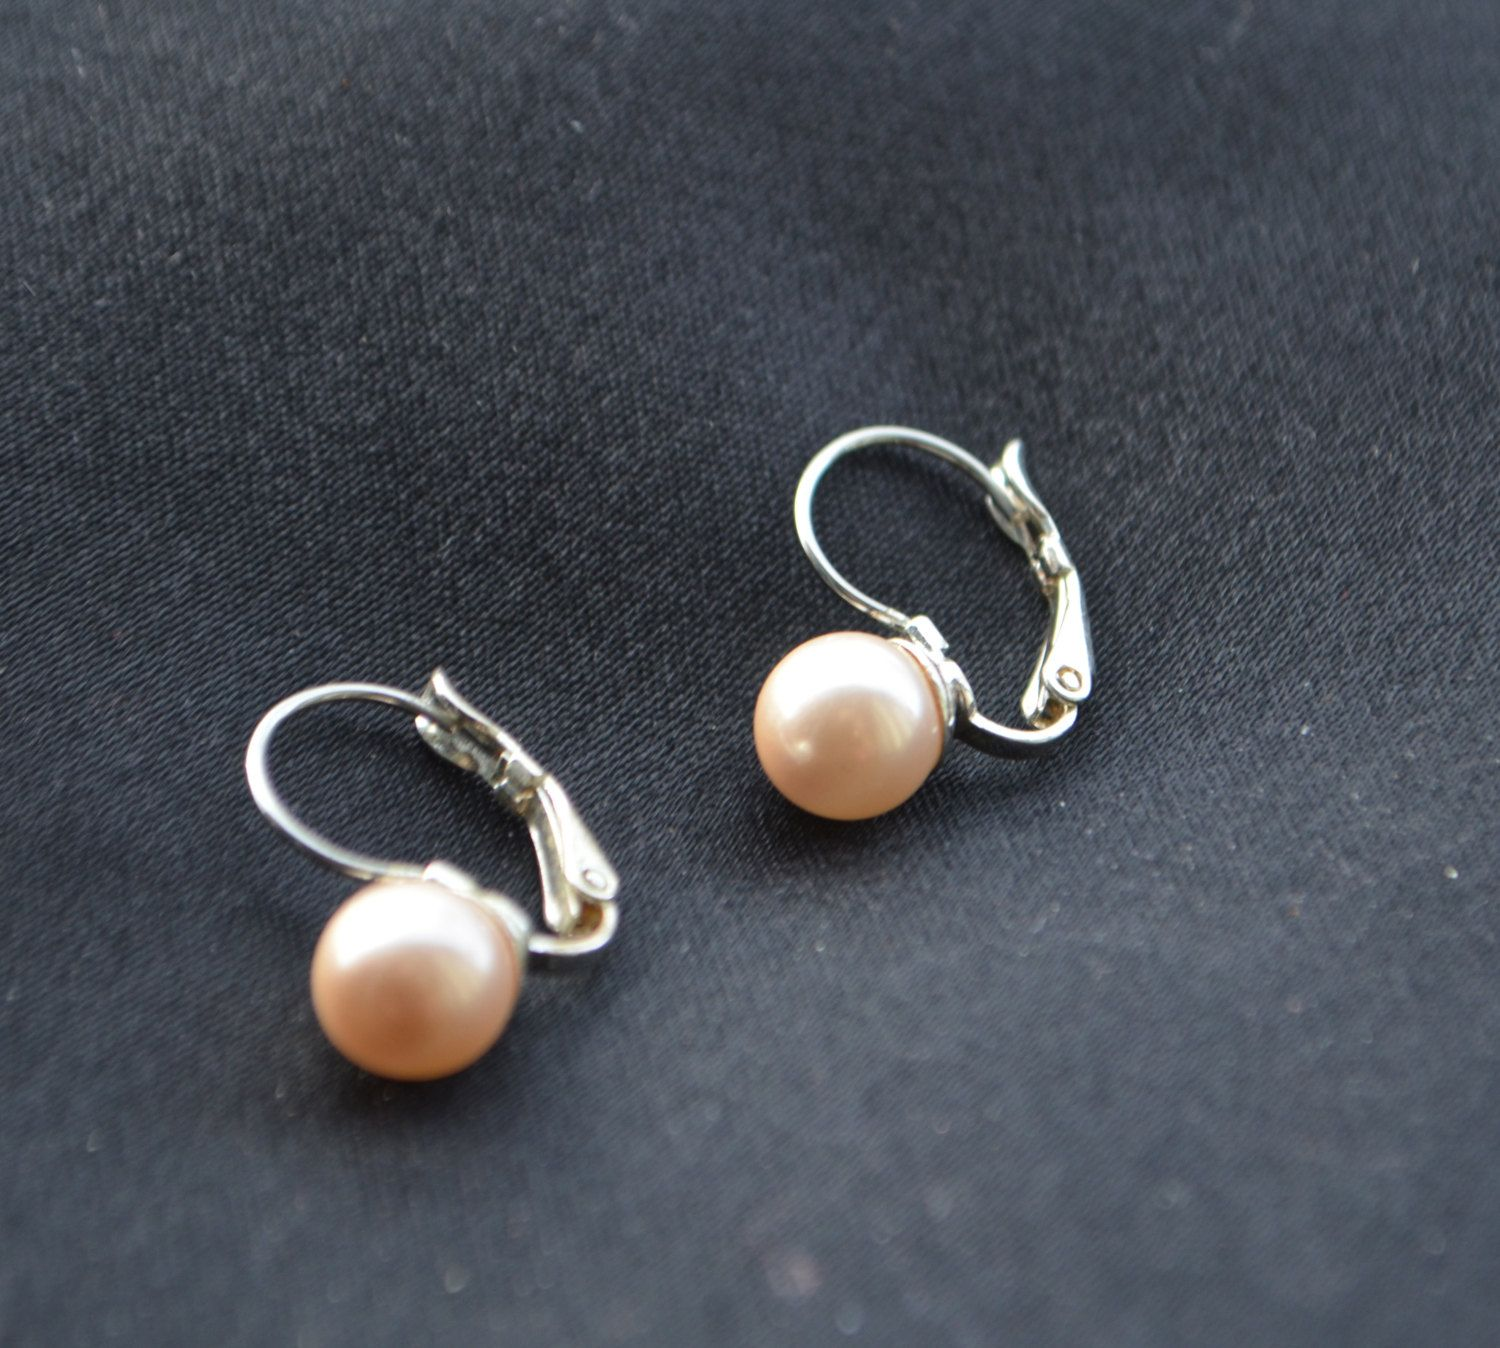 Genuine Pearl Earrings Pink Tint To Pearl With Silver Tone Accent By  Studiovintage On Etsy